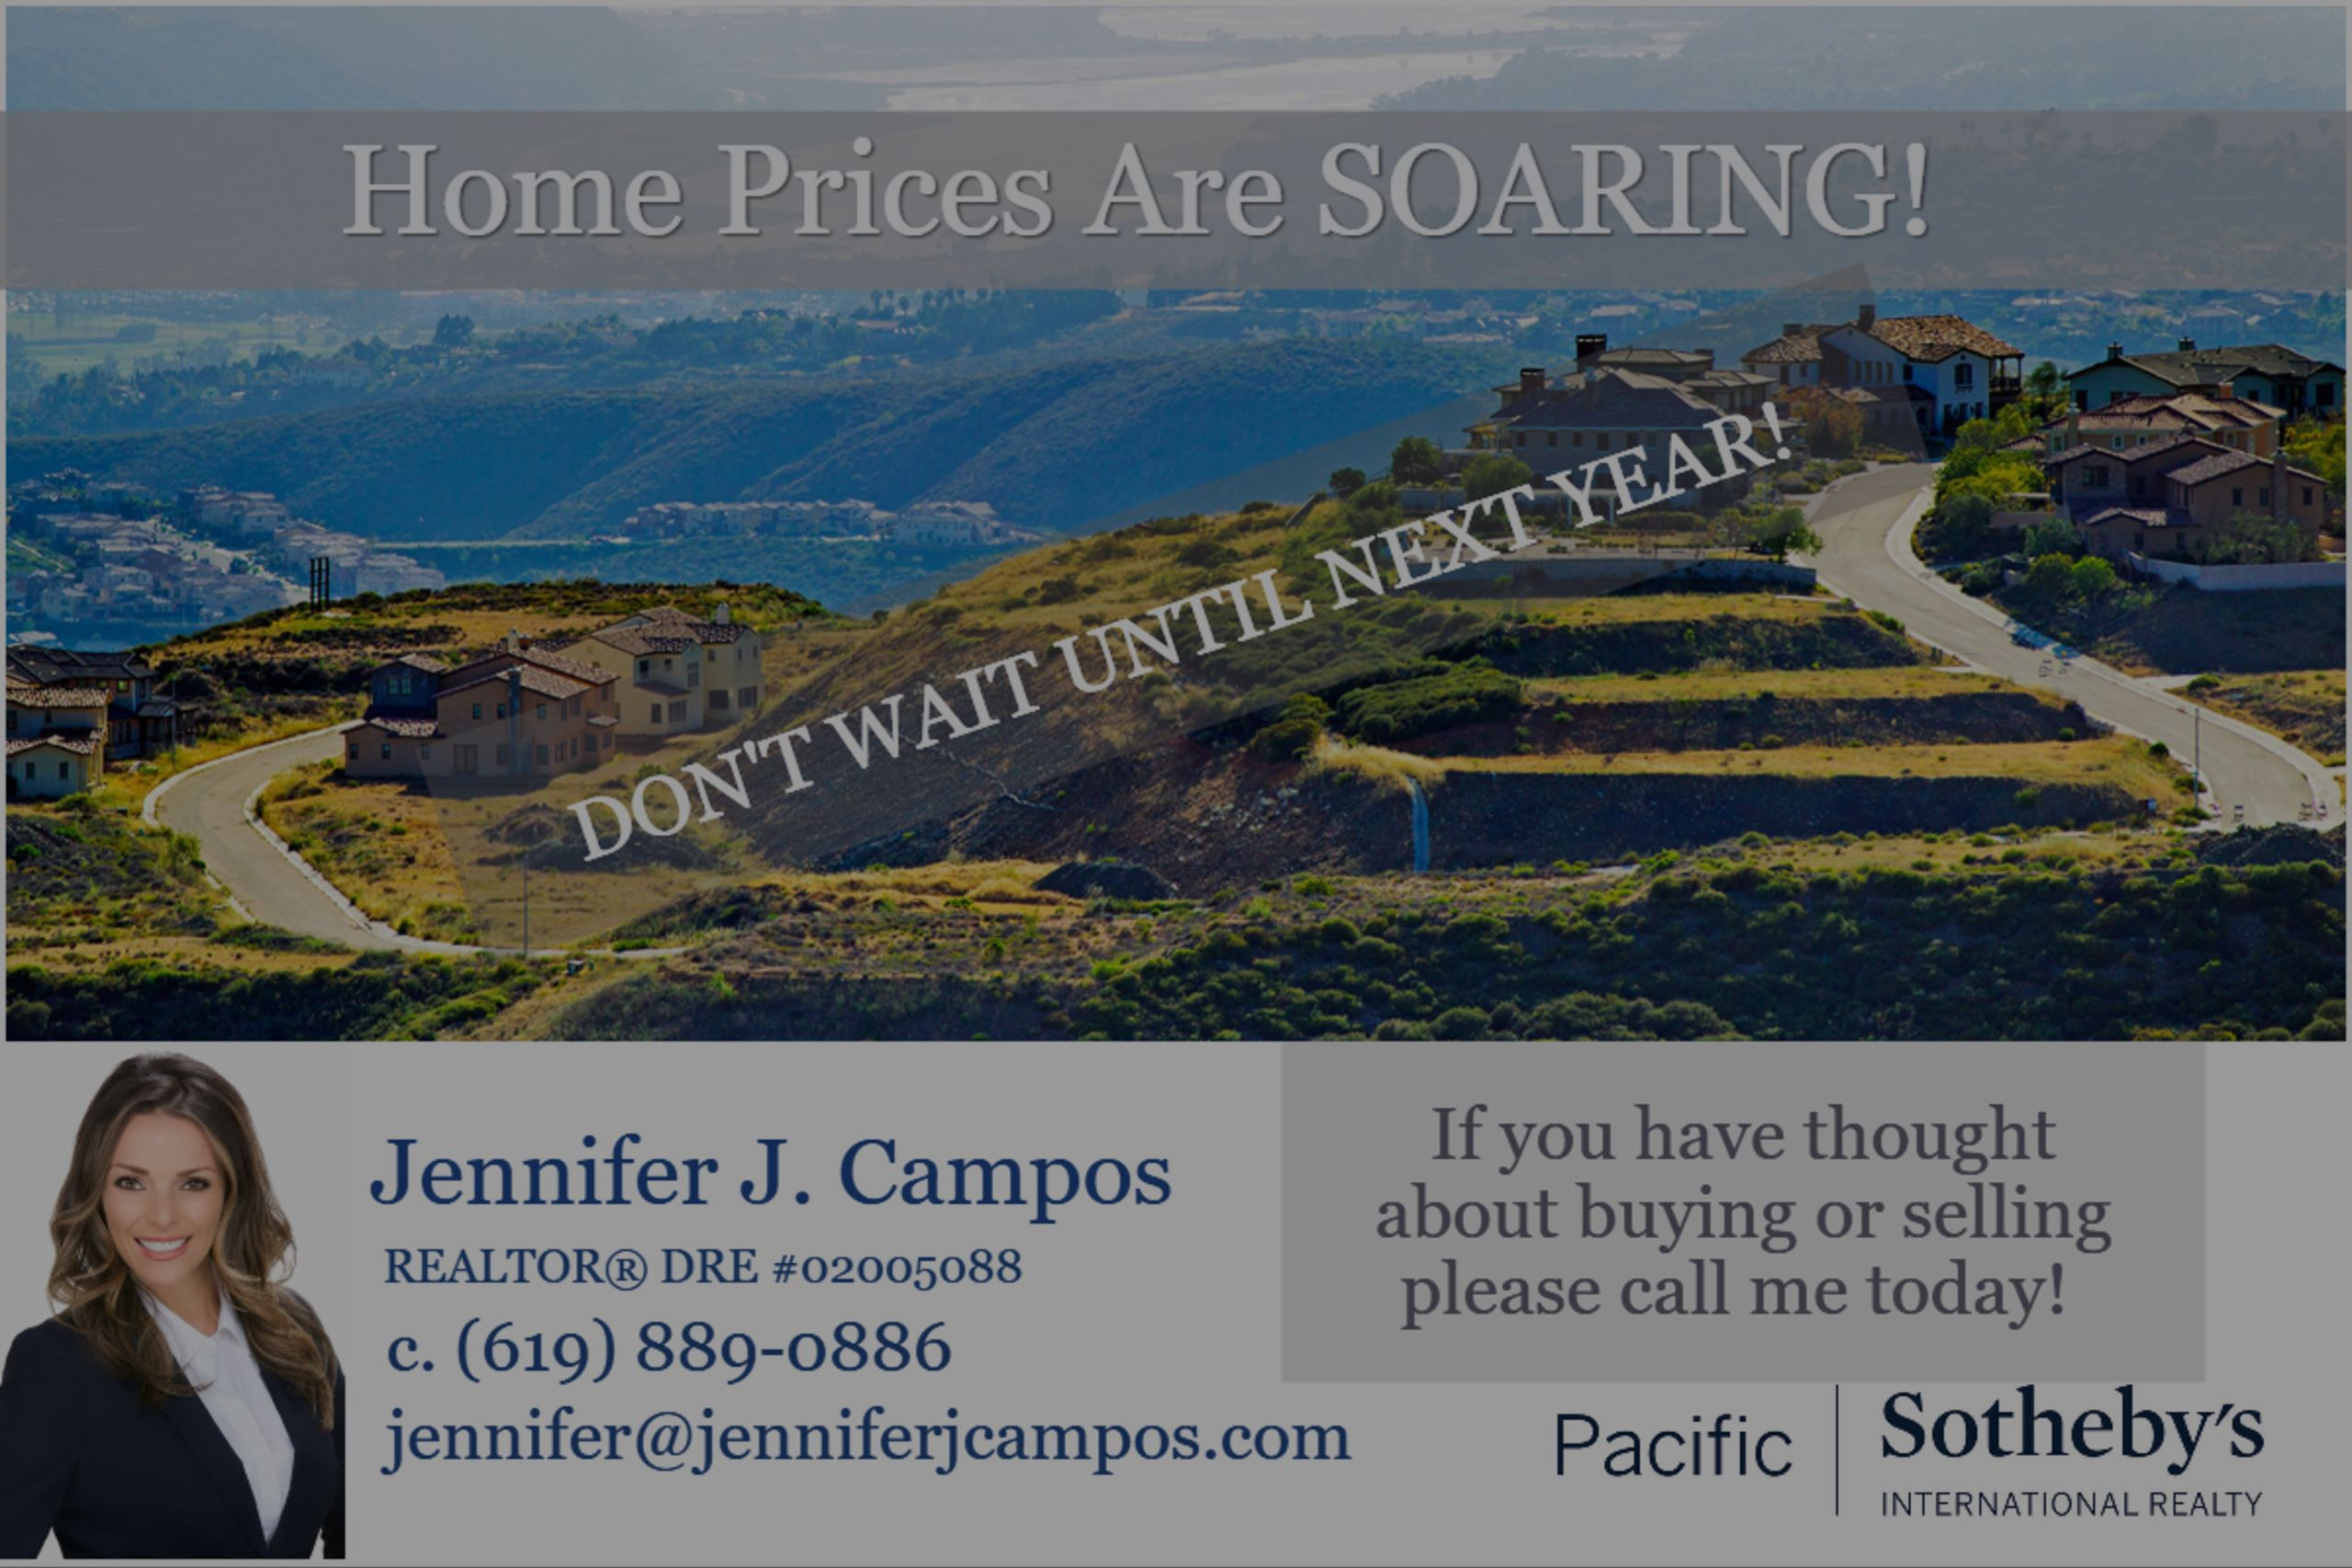 San Diego Home Prices Are SOARING!